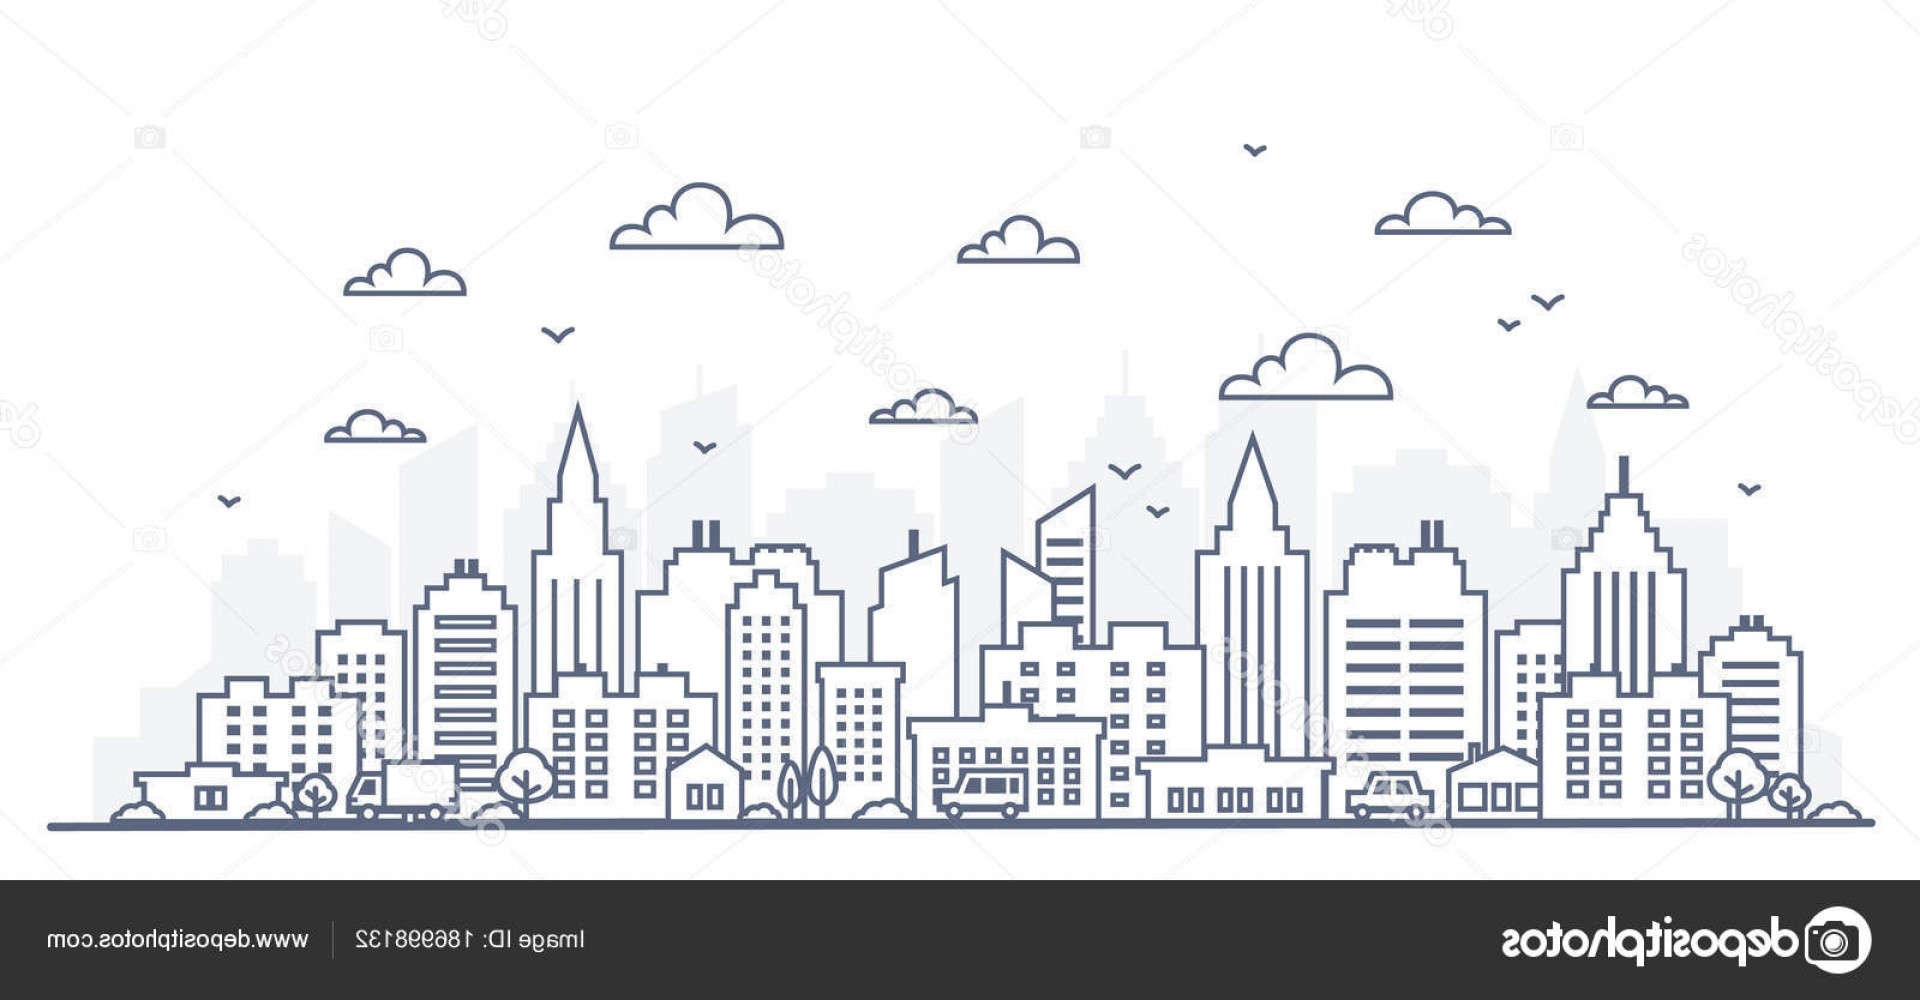 Cars Skyline Vector: Stock Illustration Thin Line Style City Panorama